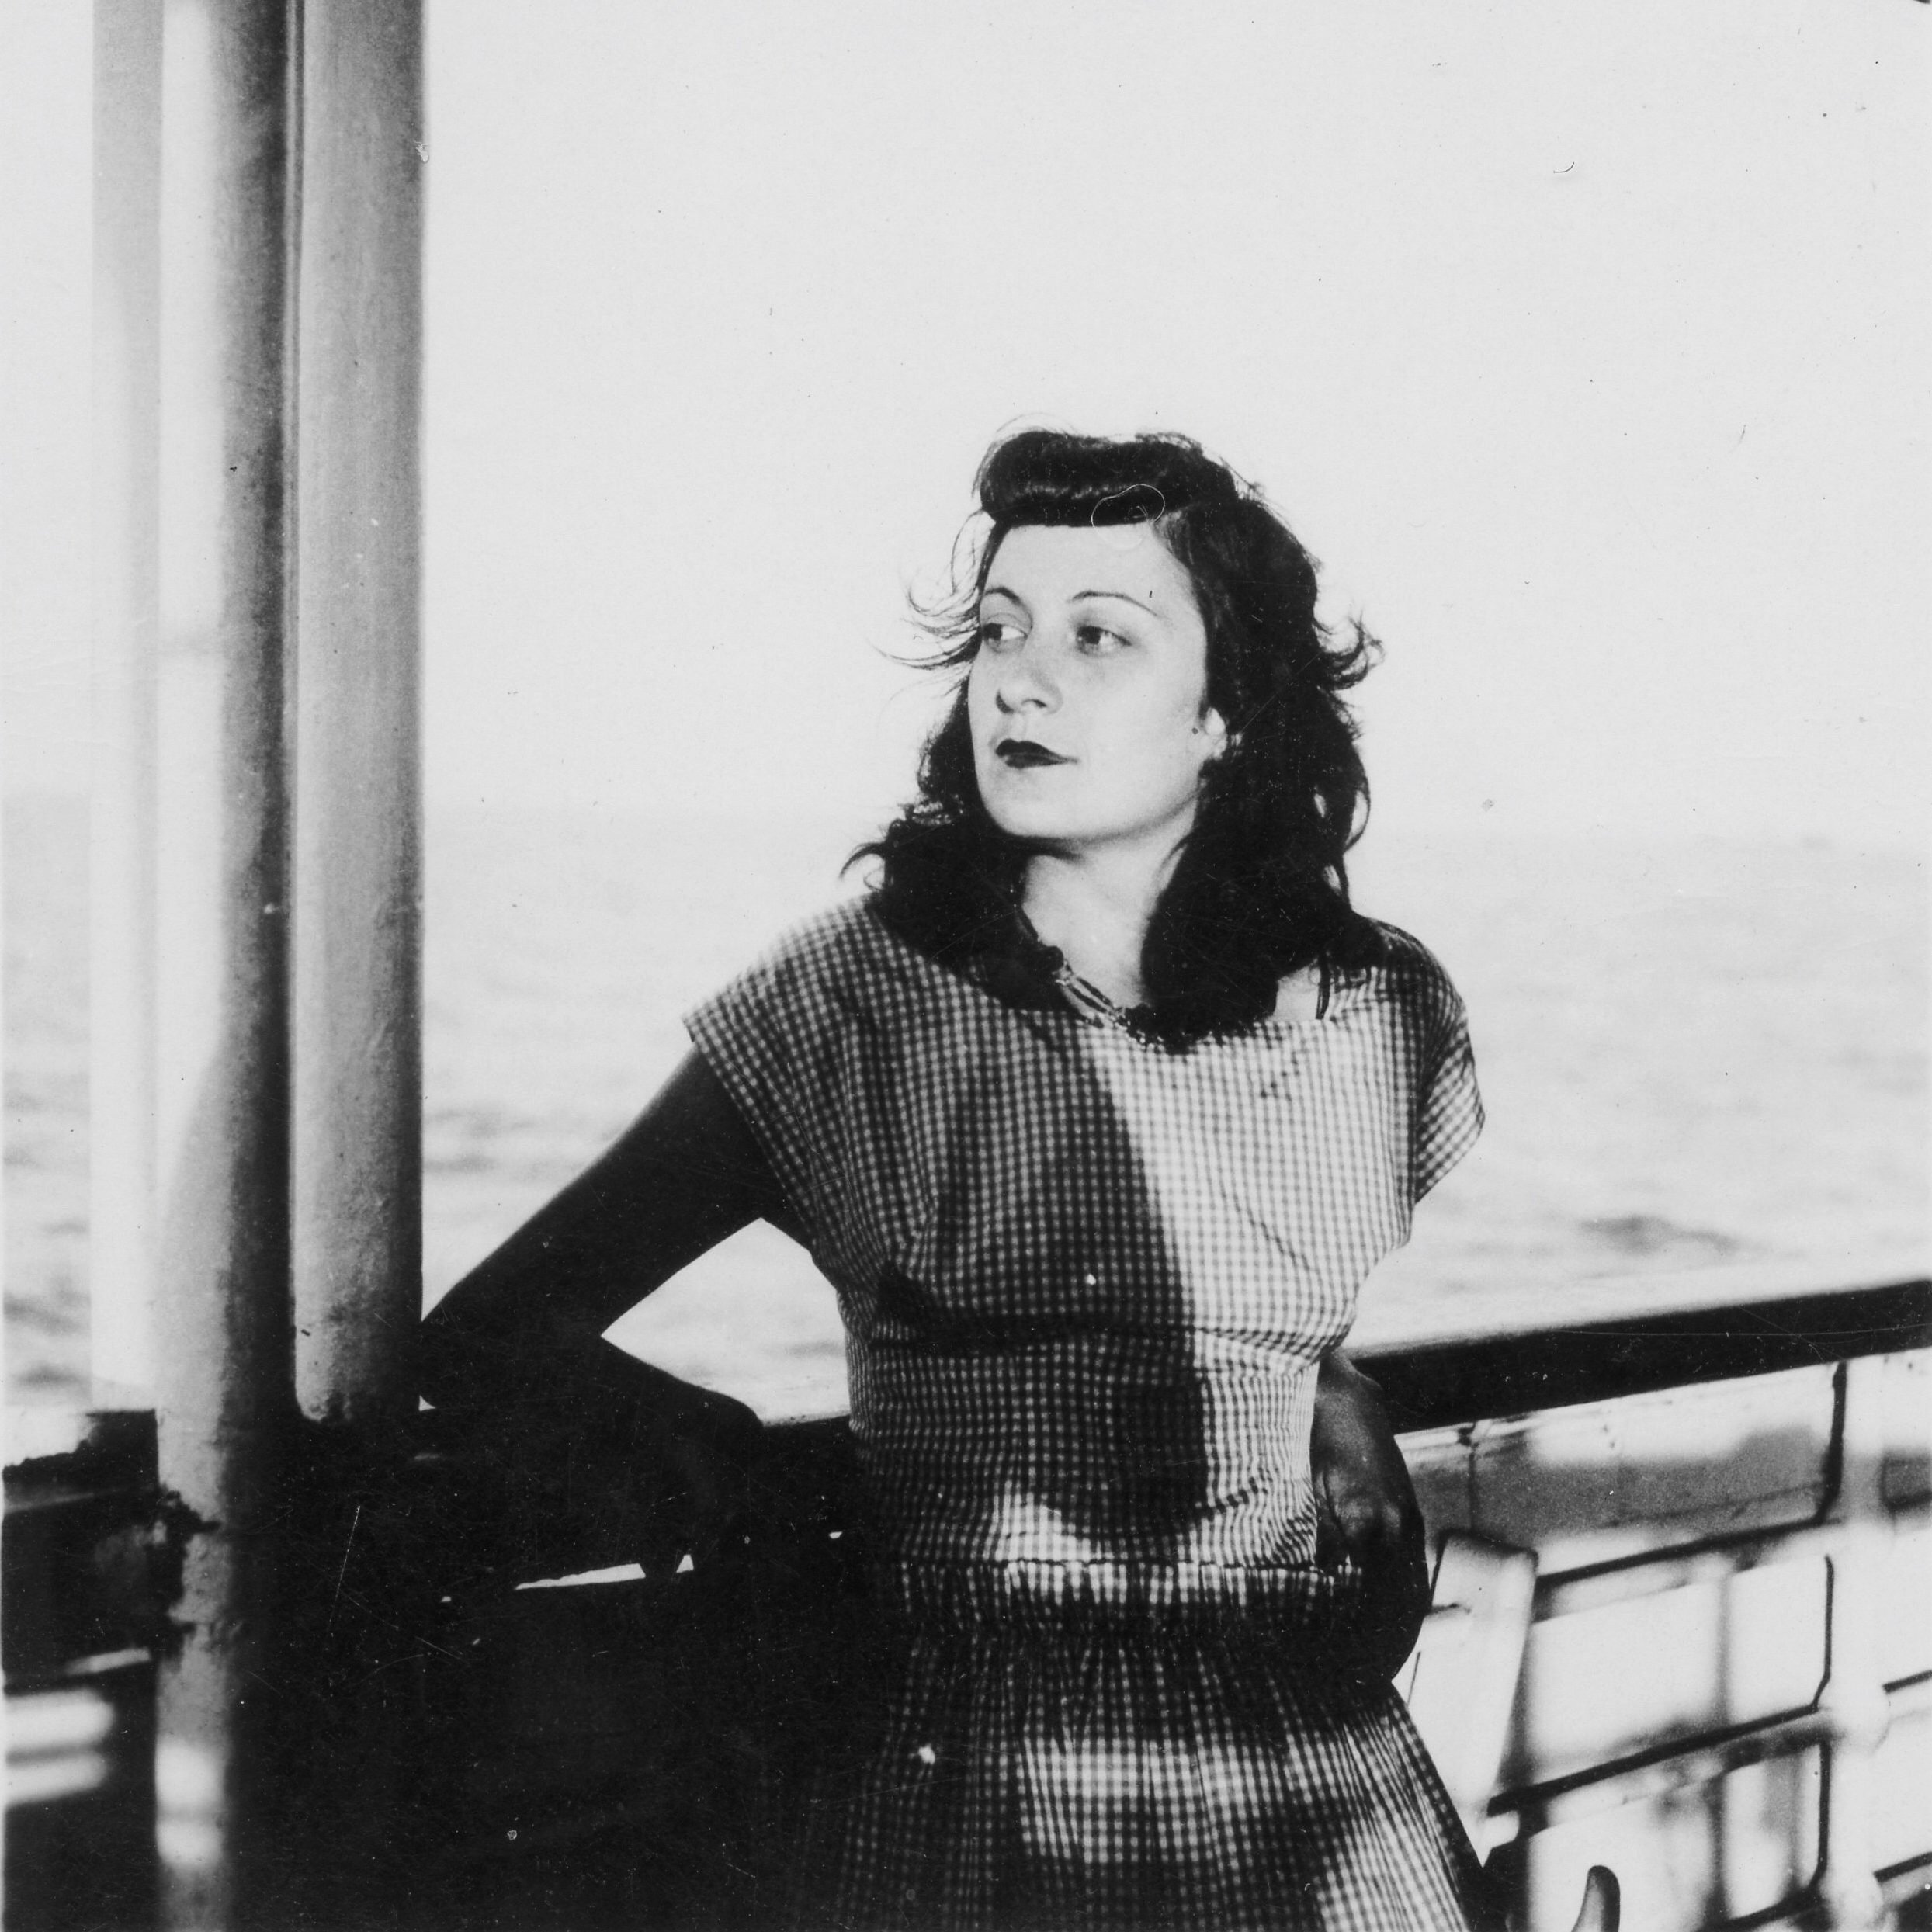 Lina Bo Bardi on the ship Almirante Jaceguay on her way to Brasil in 1946